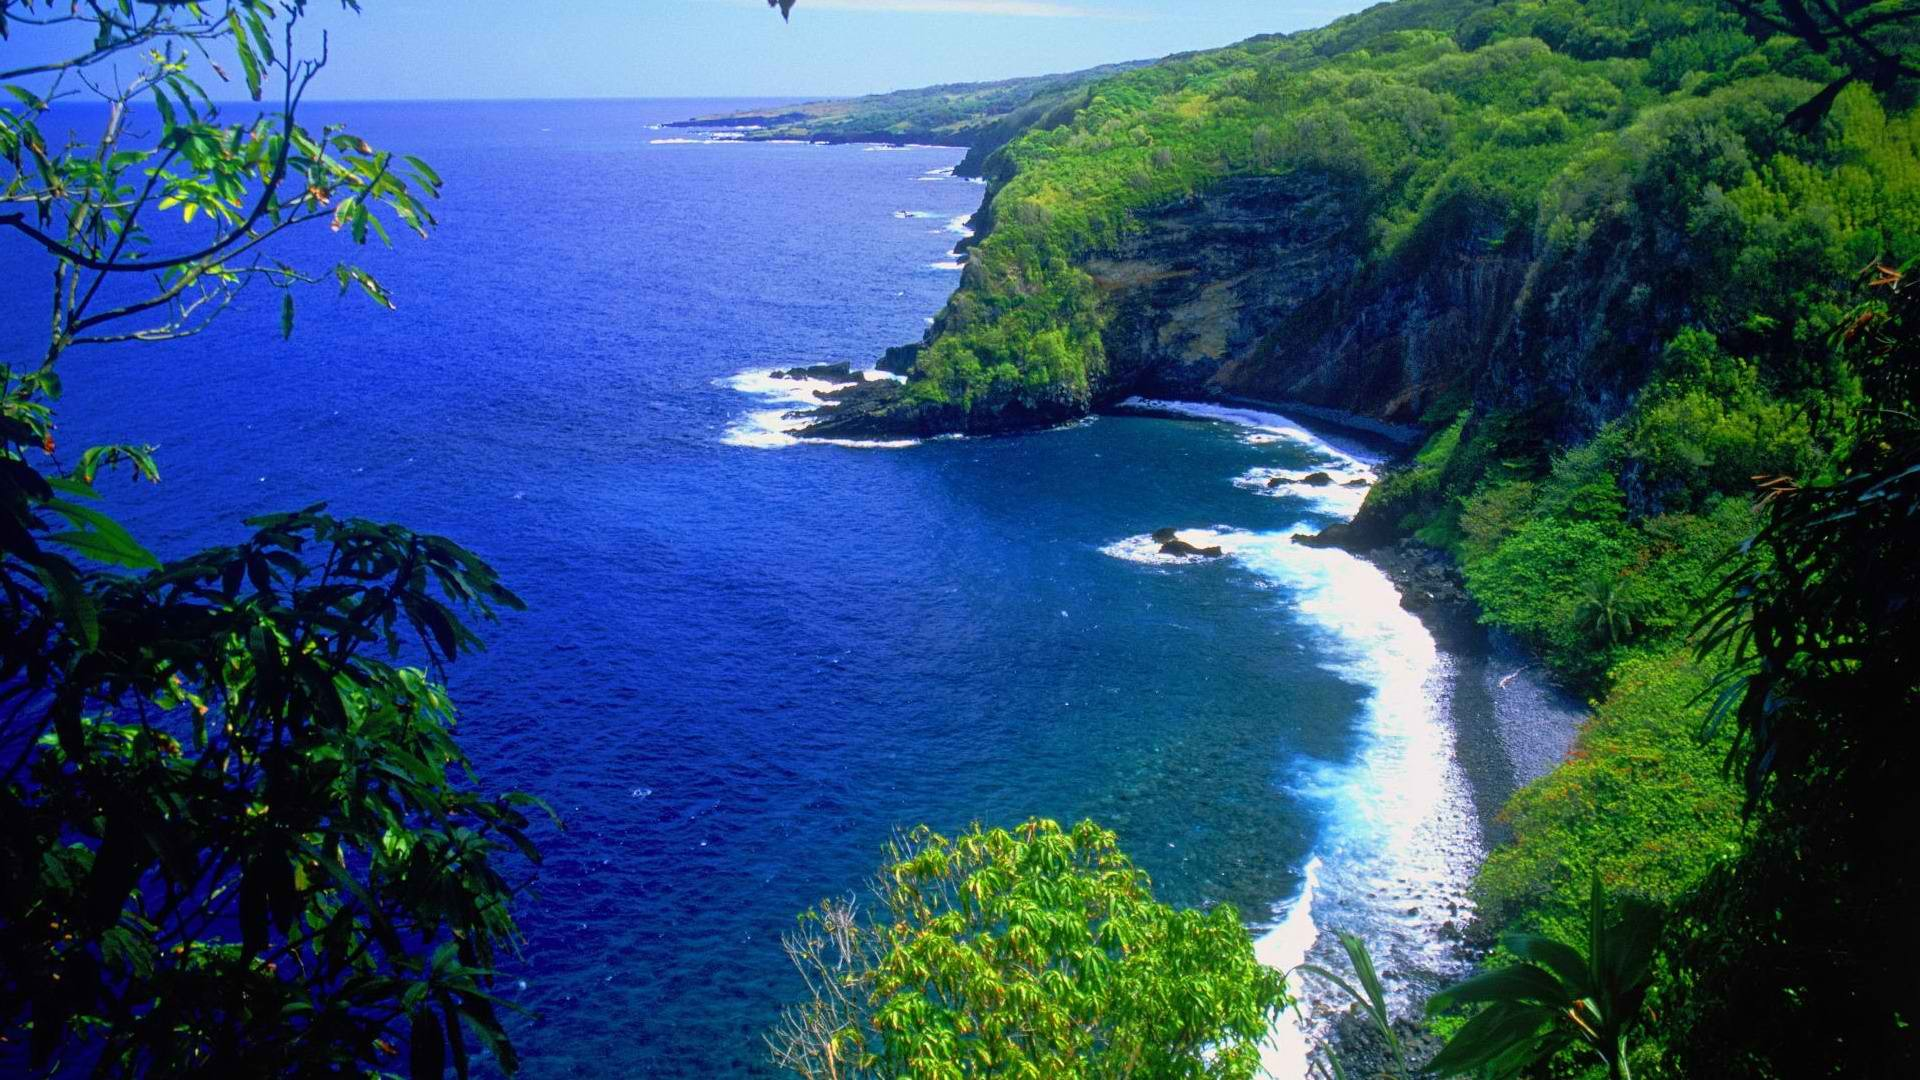 Hawaii Wallpaper #12